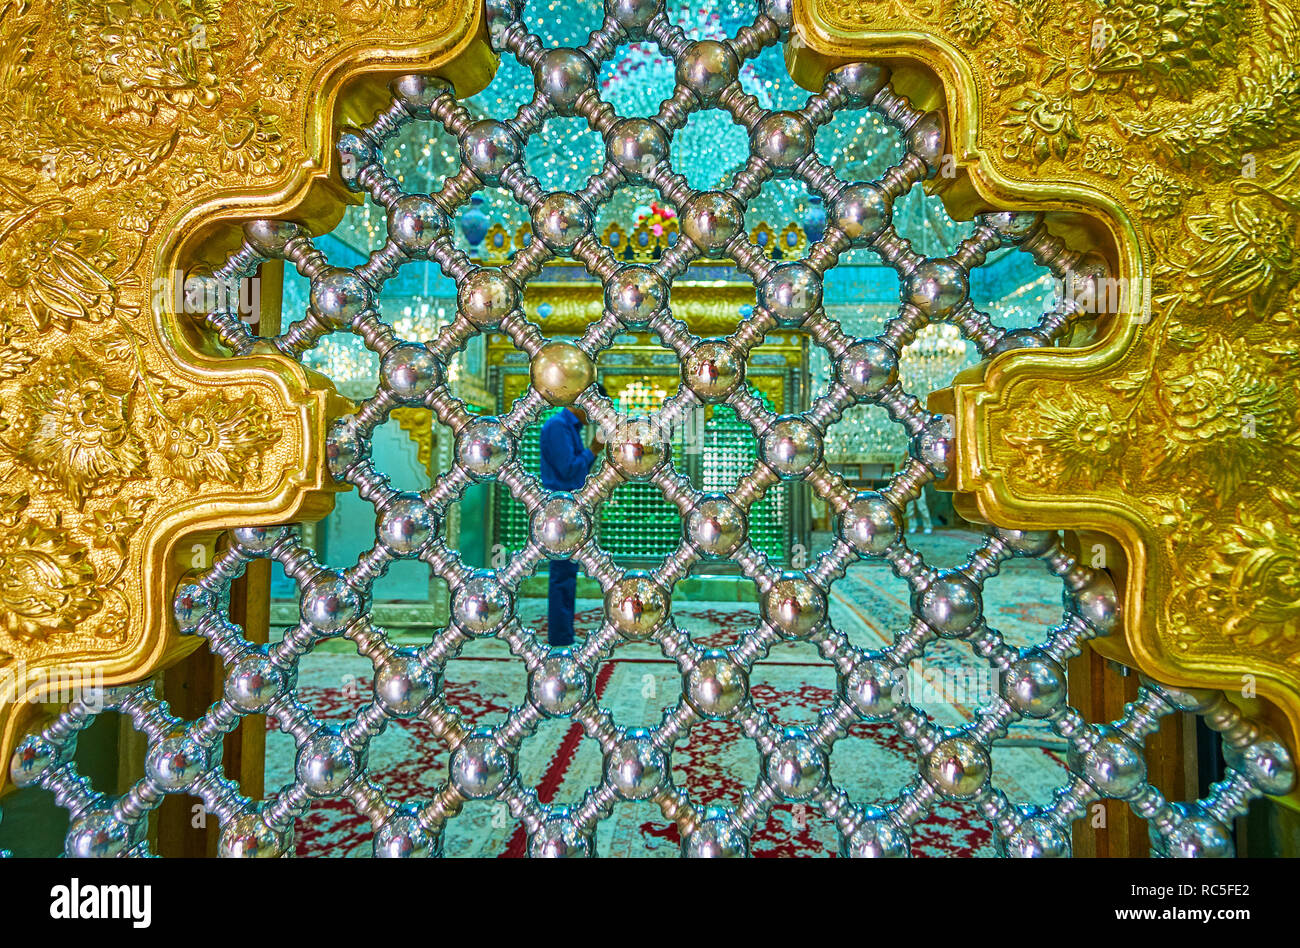 YAZD, IRAN - OCTOBER 18, 2017: The view through the shining metal lattice of the Persian screen to the men's praer hall of Imam Zadeh Jafar Shrine, on - Stock Image